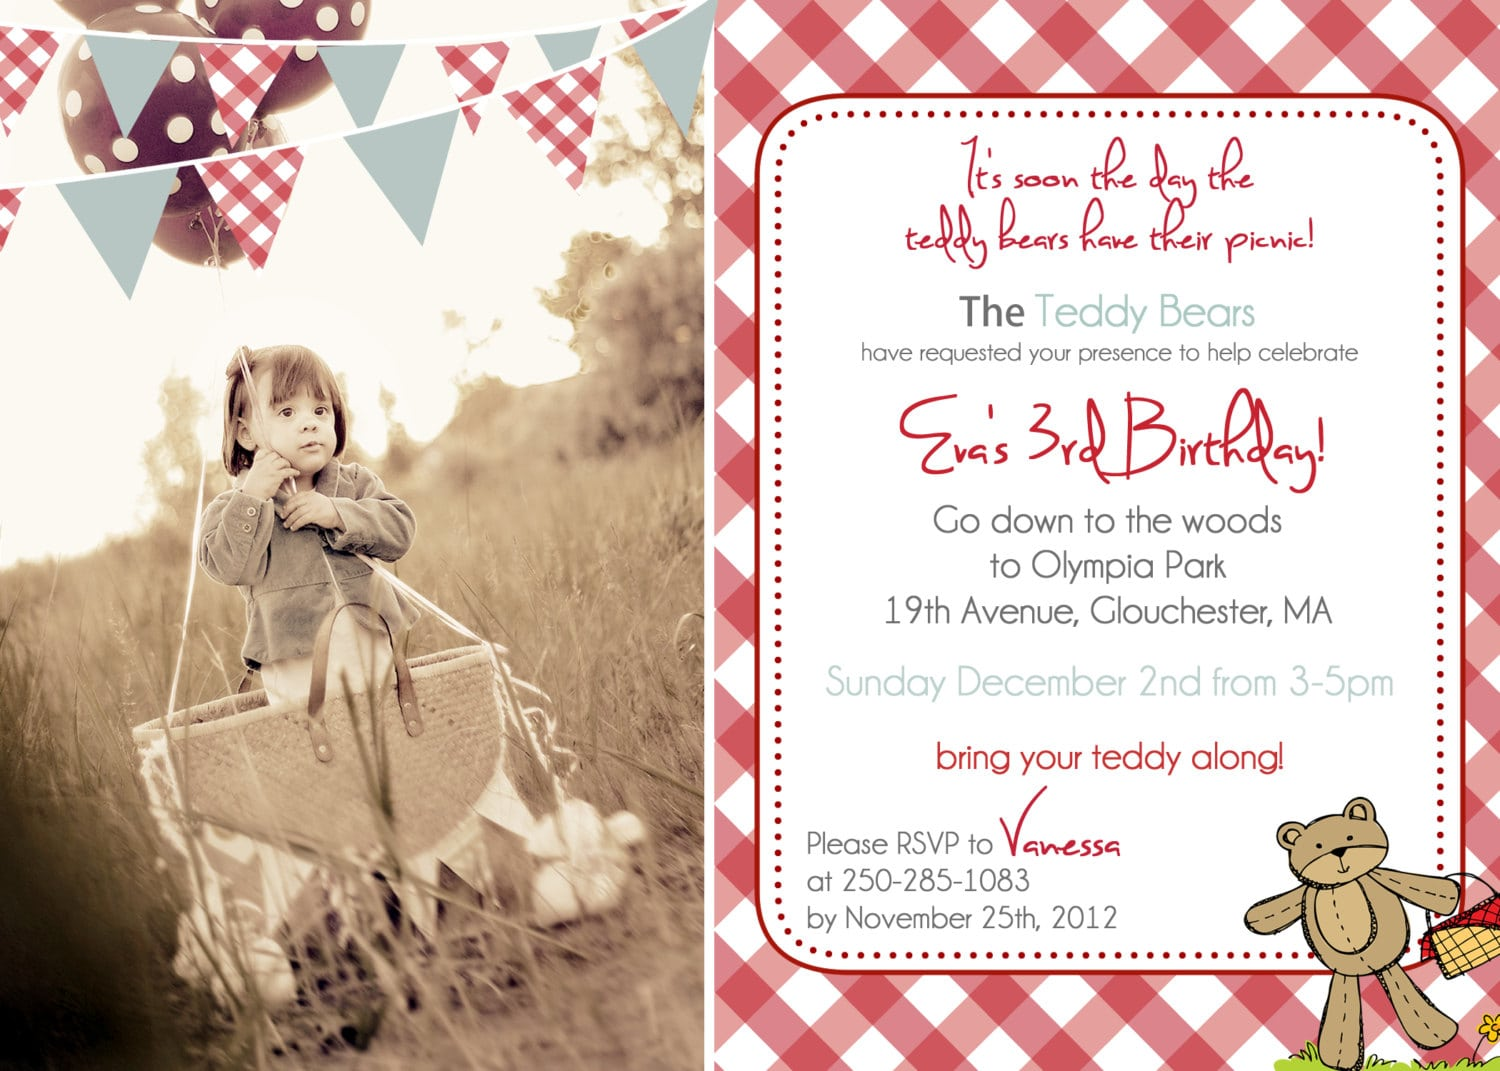 Teddy Bear Picnic Party Invitations - Mickey Mouse Invitations ...